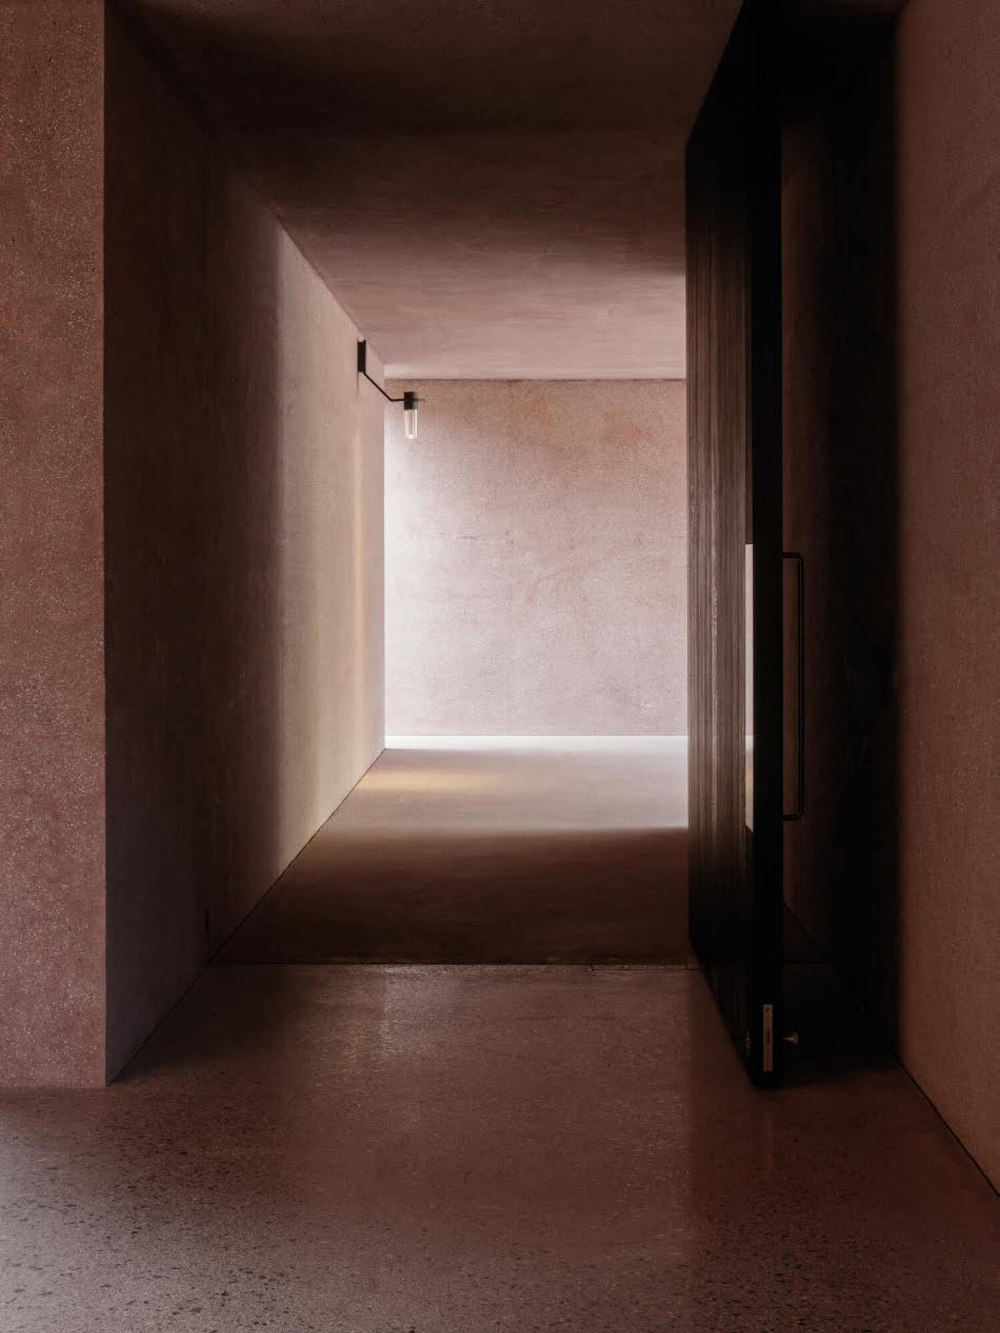 Silère Wall Sconce By David Chipperfield For Vbo Product